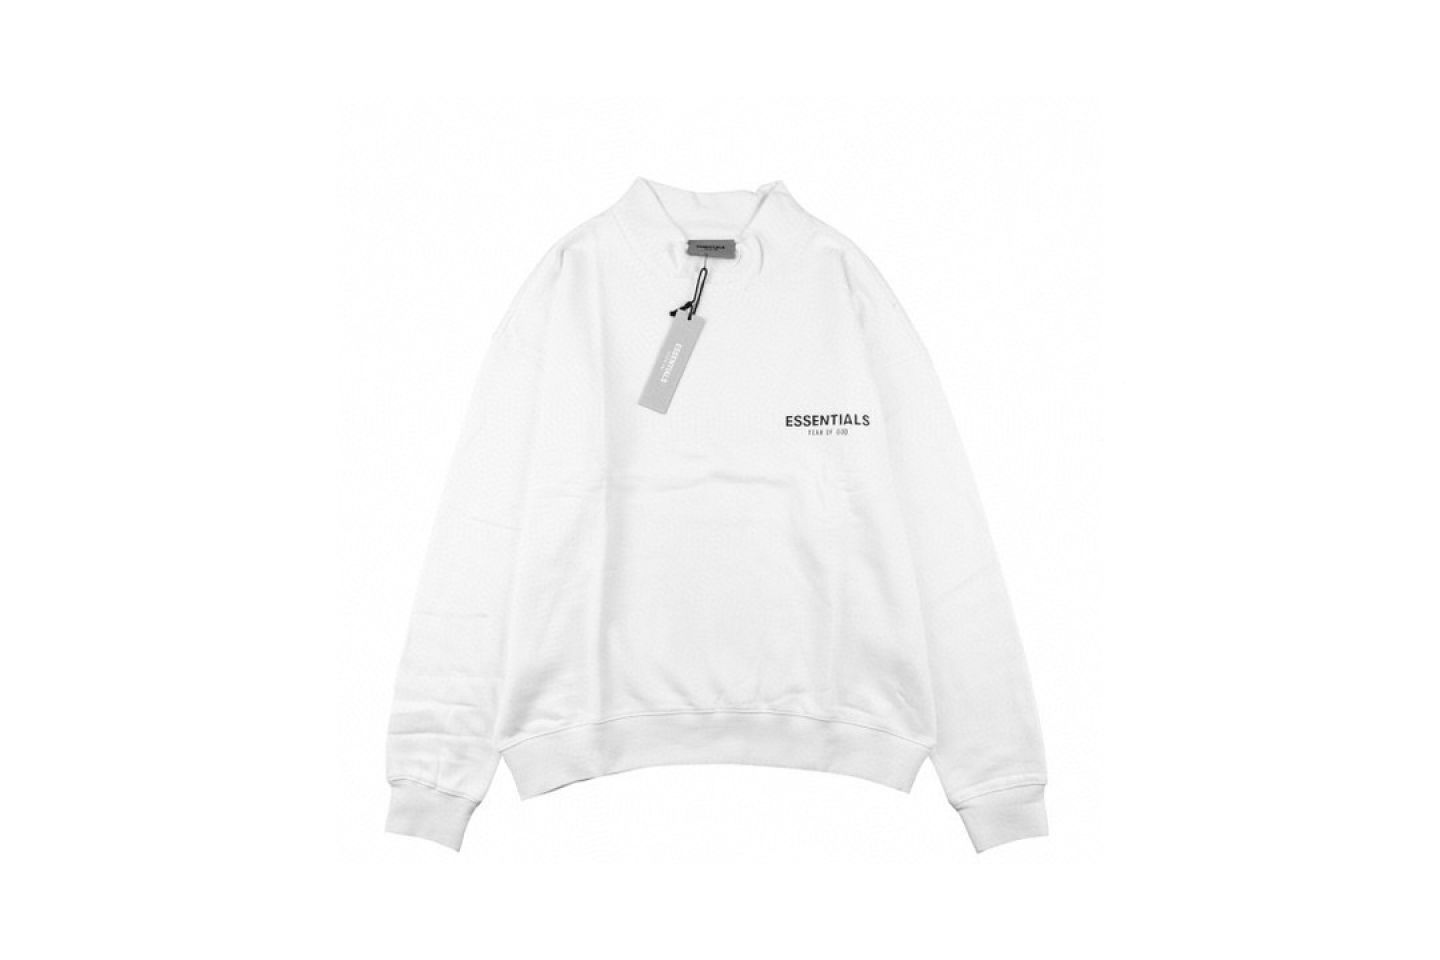 """Shirt Fear Of God double line letter reflective half high collar sweater """"White"""" 1 fear_of_god_double_line_letter_reflective_half_high_collar_sweater_white_1"""